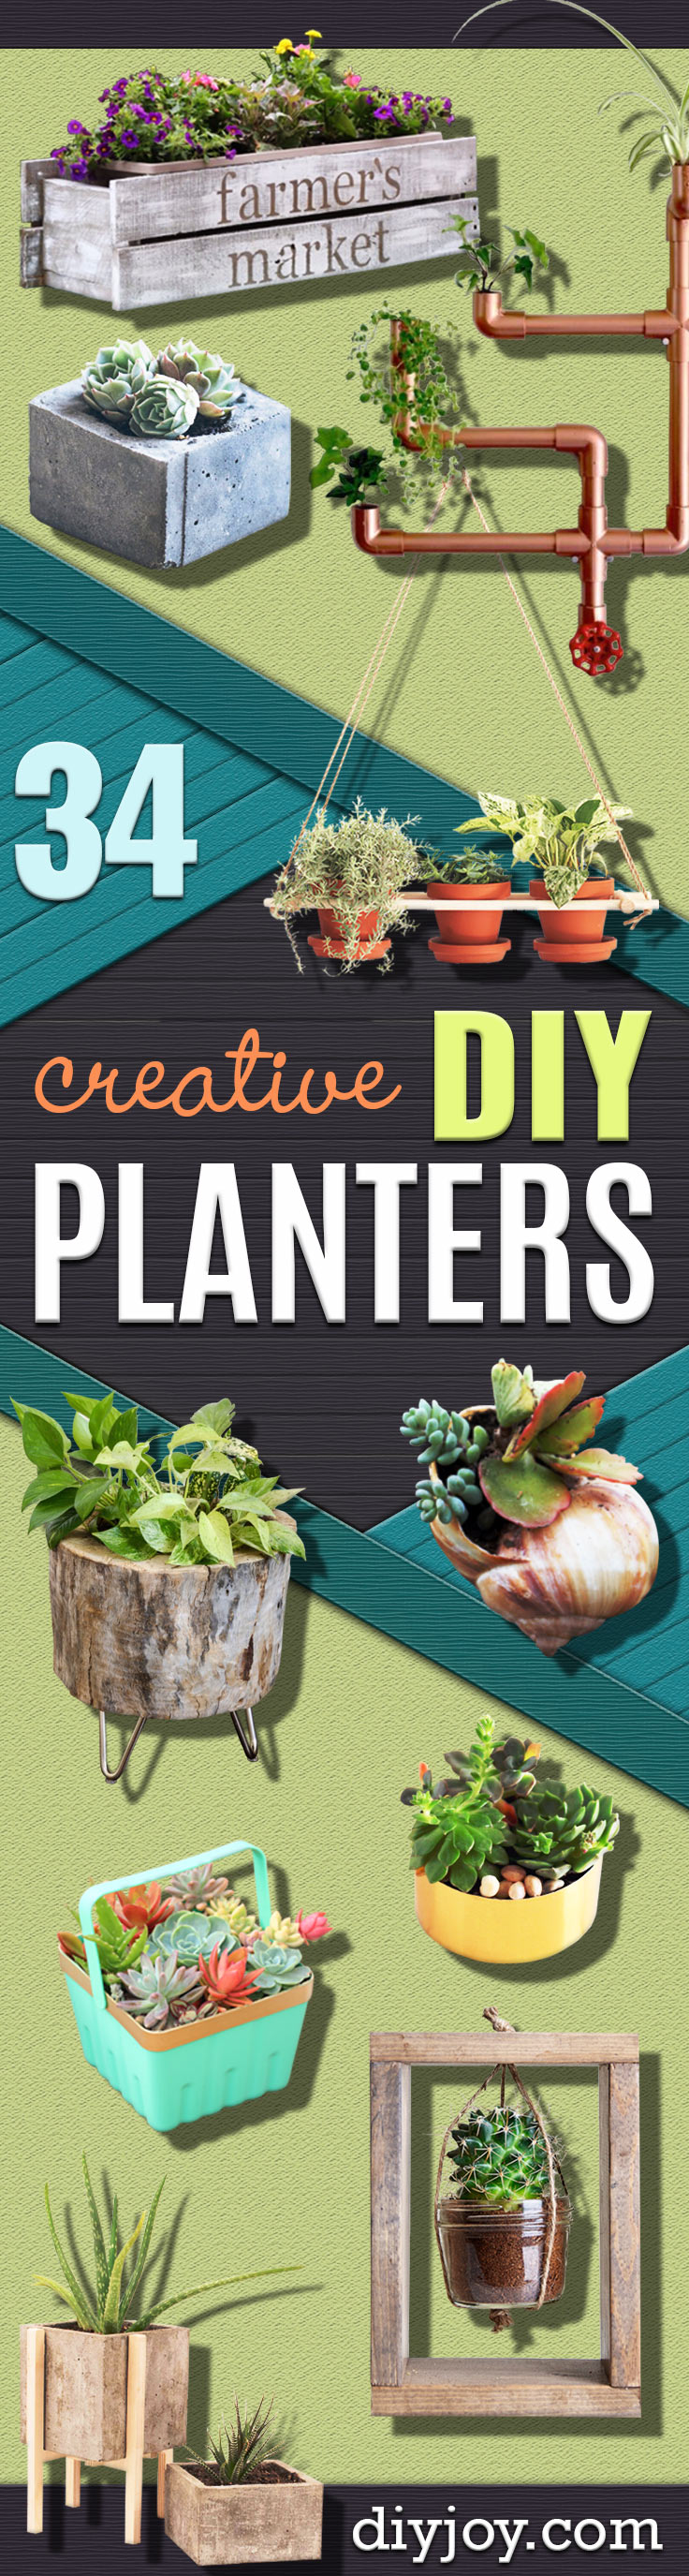 34 creative diy planters you will simply adore creative diy planters best do it yourself planters and crafts you can make for your solutioingenieria Gallery